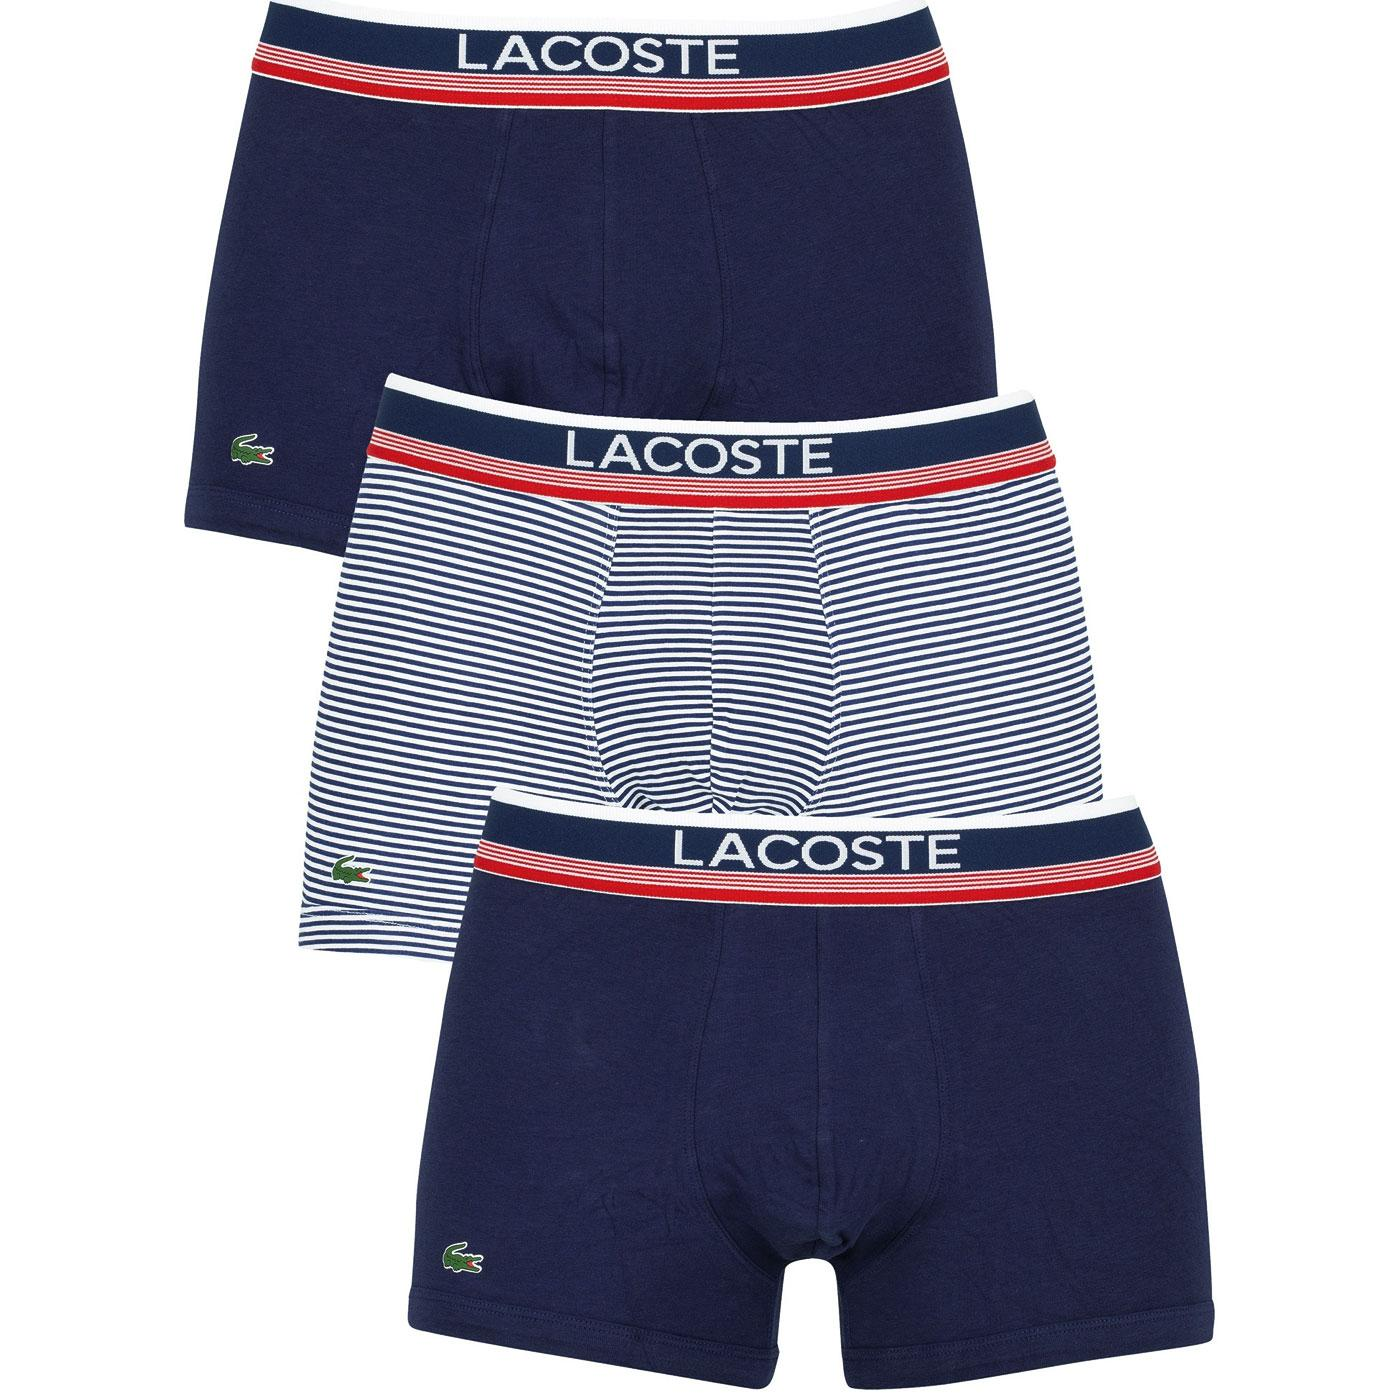 + LACOSTE Mens 3 Pack Stripe Retro Trunks - BLUE